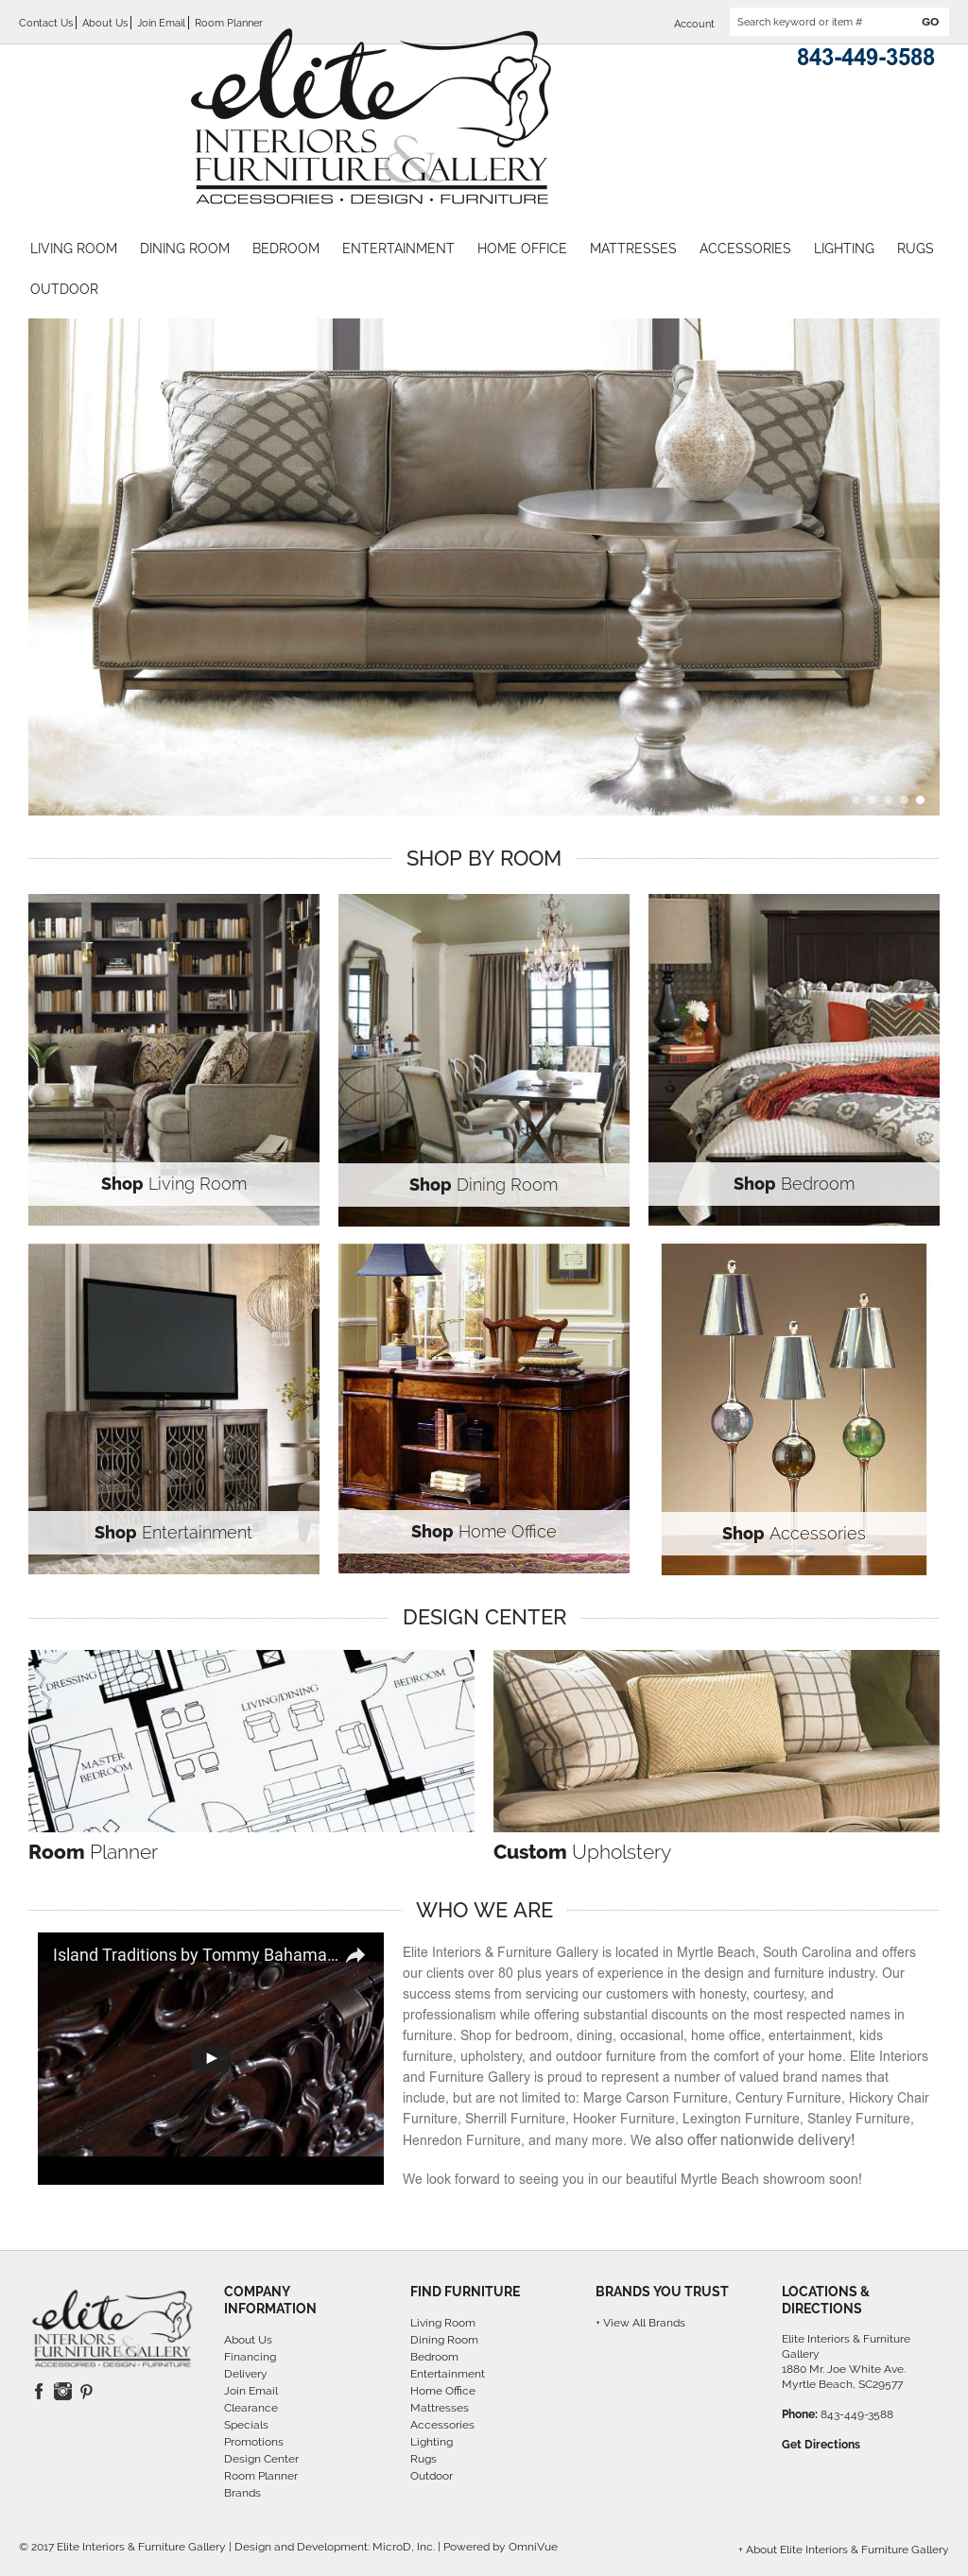 Elite Interiors U0026 Furniture Galleryu0027s Website Screenshot On ...